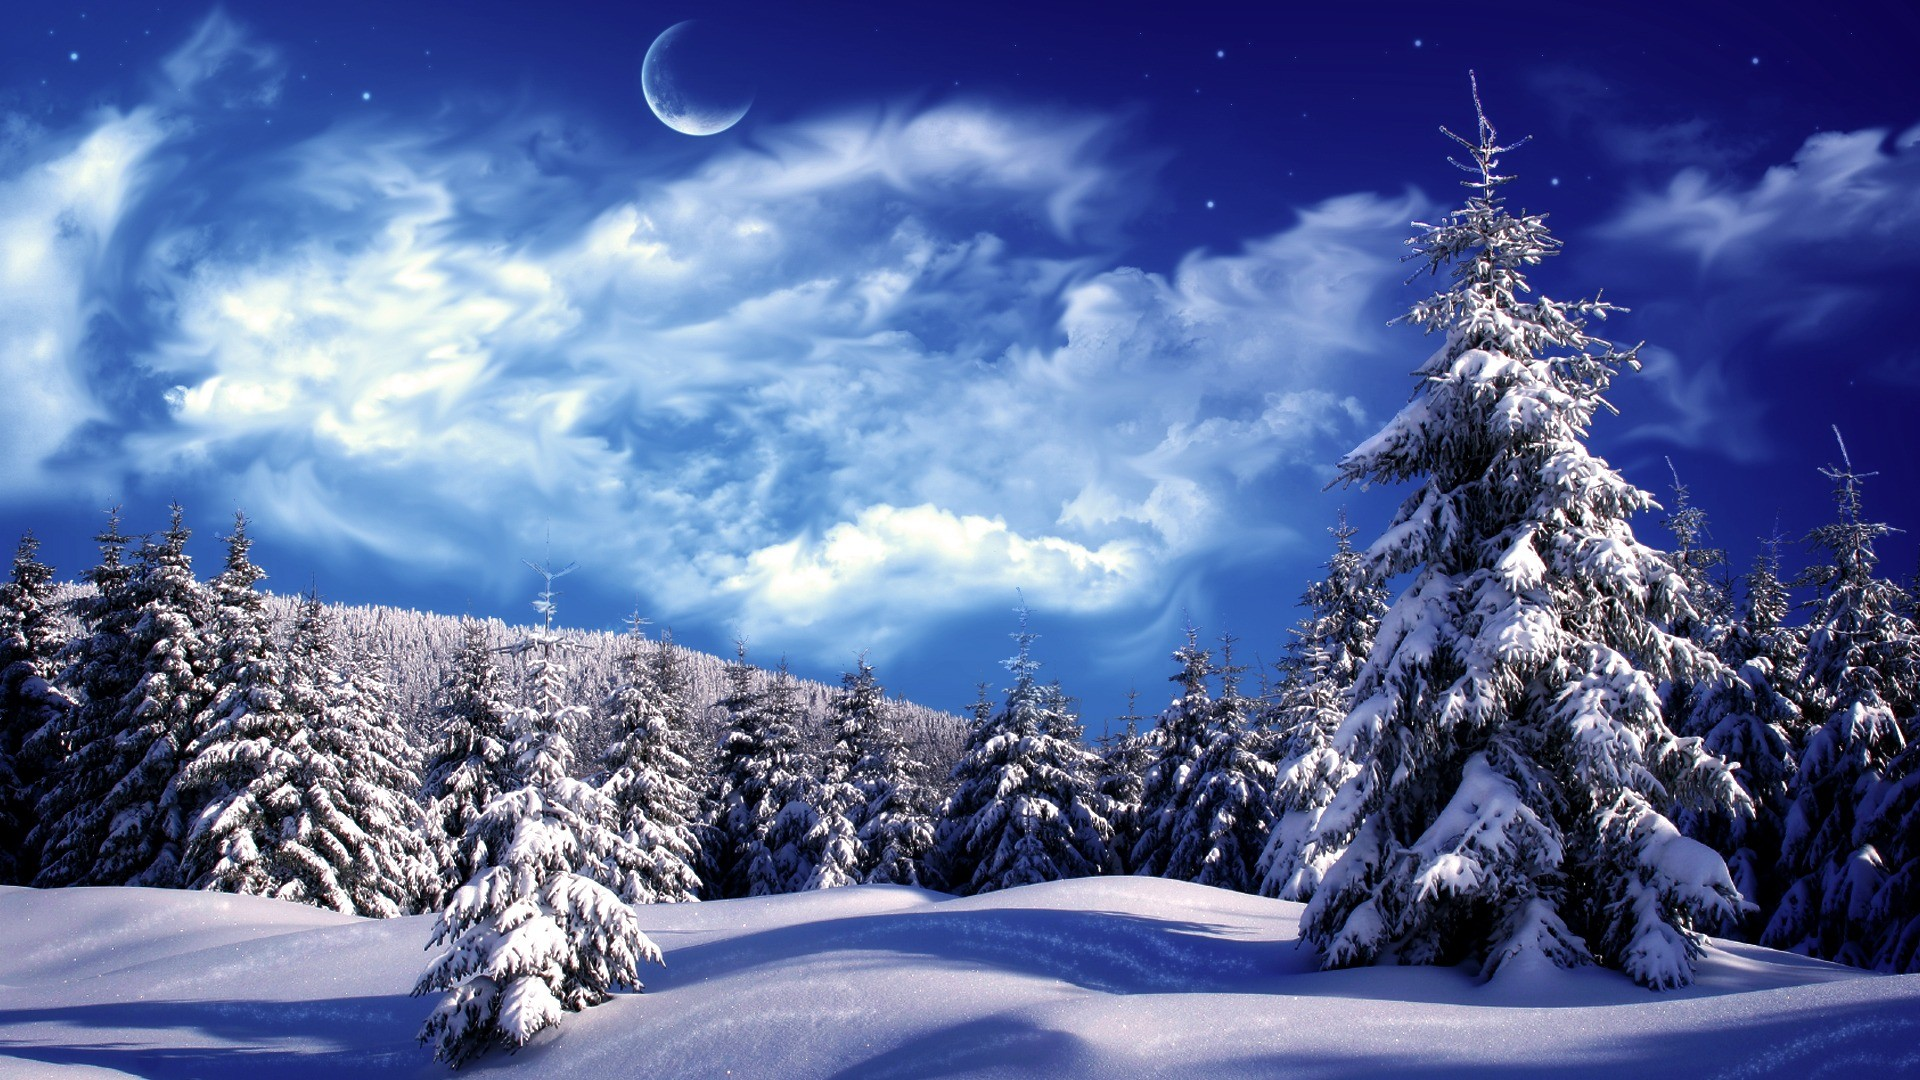 Winter Wallpaper and Pictures: Forest in winter Wallpaper HD Winter  Pictures Wallpapers Wallpapers)